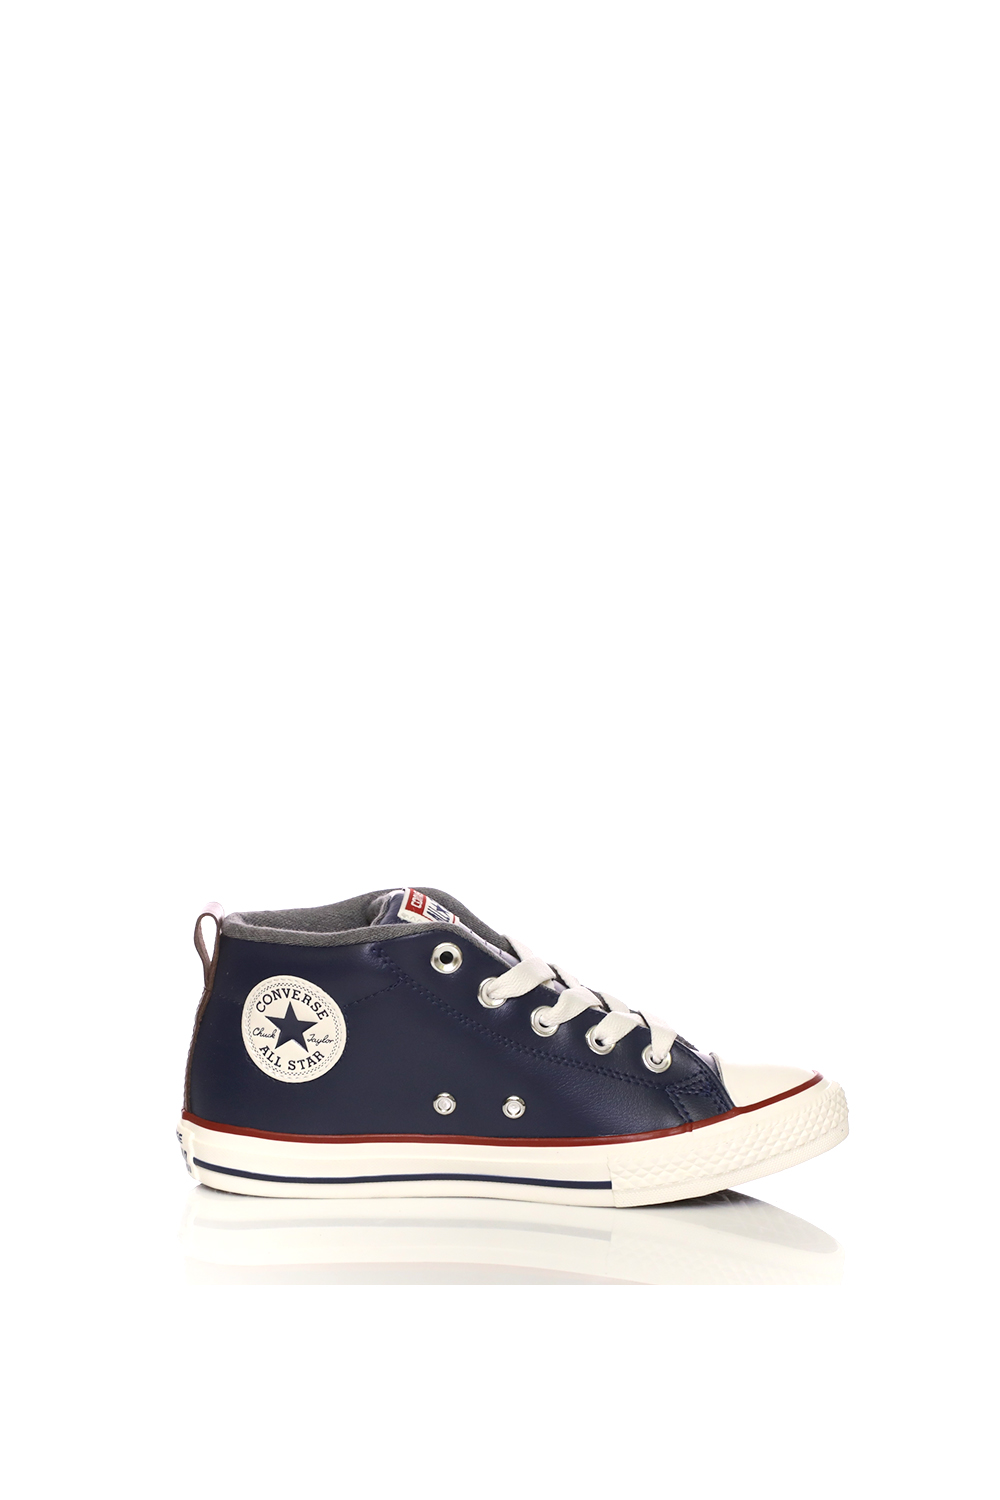 bb7fec35a19 CONVERSE – Παιδικά παπούτσια CONVERSE Chuck Taylor All Star Street μπλε